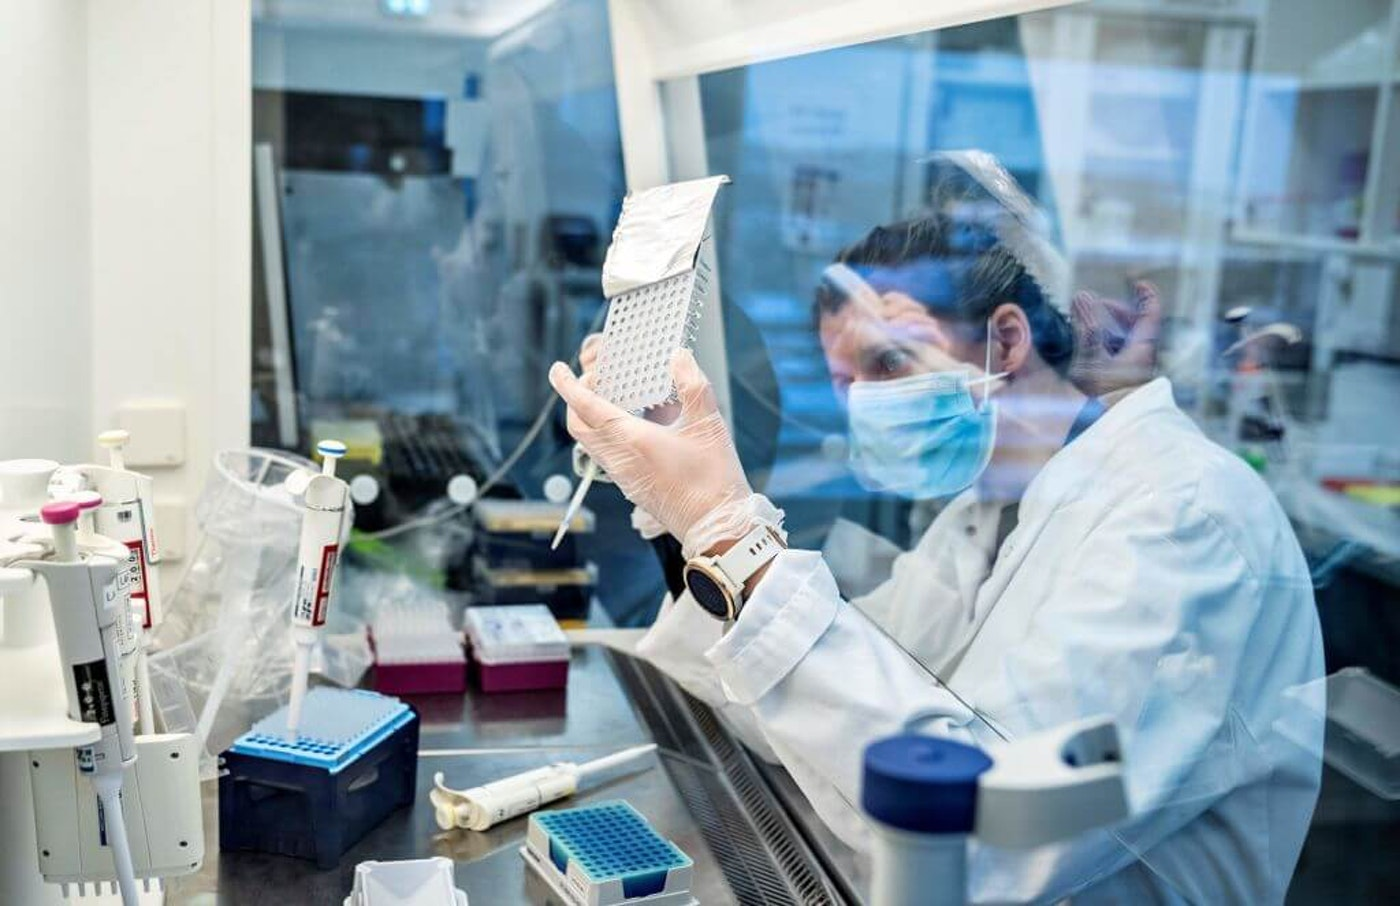 A researcher at Aalborg University looks at samples from behind a safety screen during the screening and analysis of all positive Danish coronavirus samples for the virus variant cluster B117 from the United Kingdom, in Aalborg, Denmark on January 15, 2021, during the ongoing novel coronavirus (Covid-19) pandemic. - The B117 coronavirus strain, which emerged in Britain late last year, has been shown to be between 40 and 70 percent more contagious than variants which have spread previously.